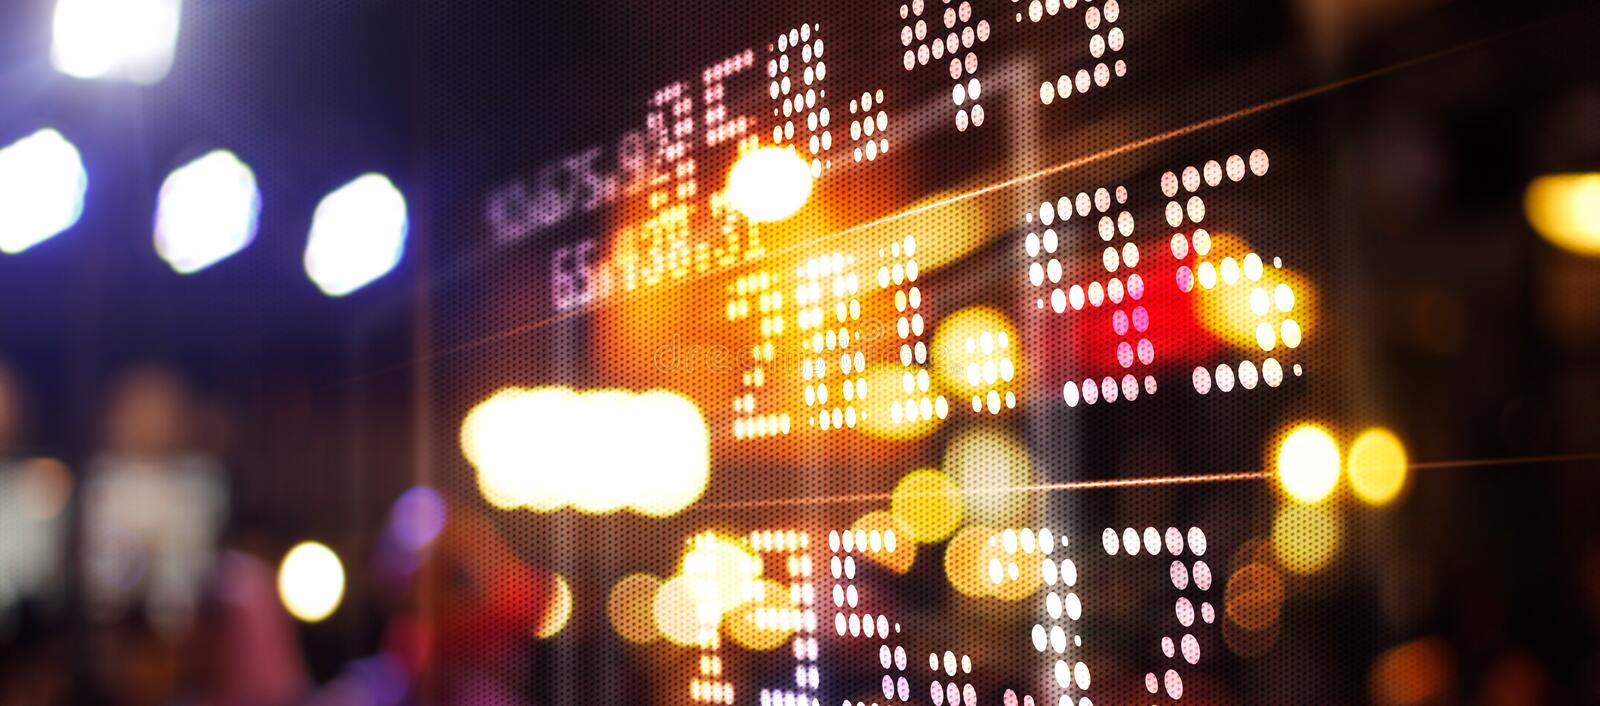 Stock market chart. Abstract graphic. Light of financial stock market numbers on night city and colorful background royalty free stock photos